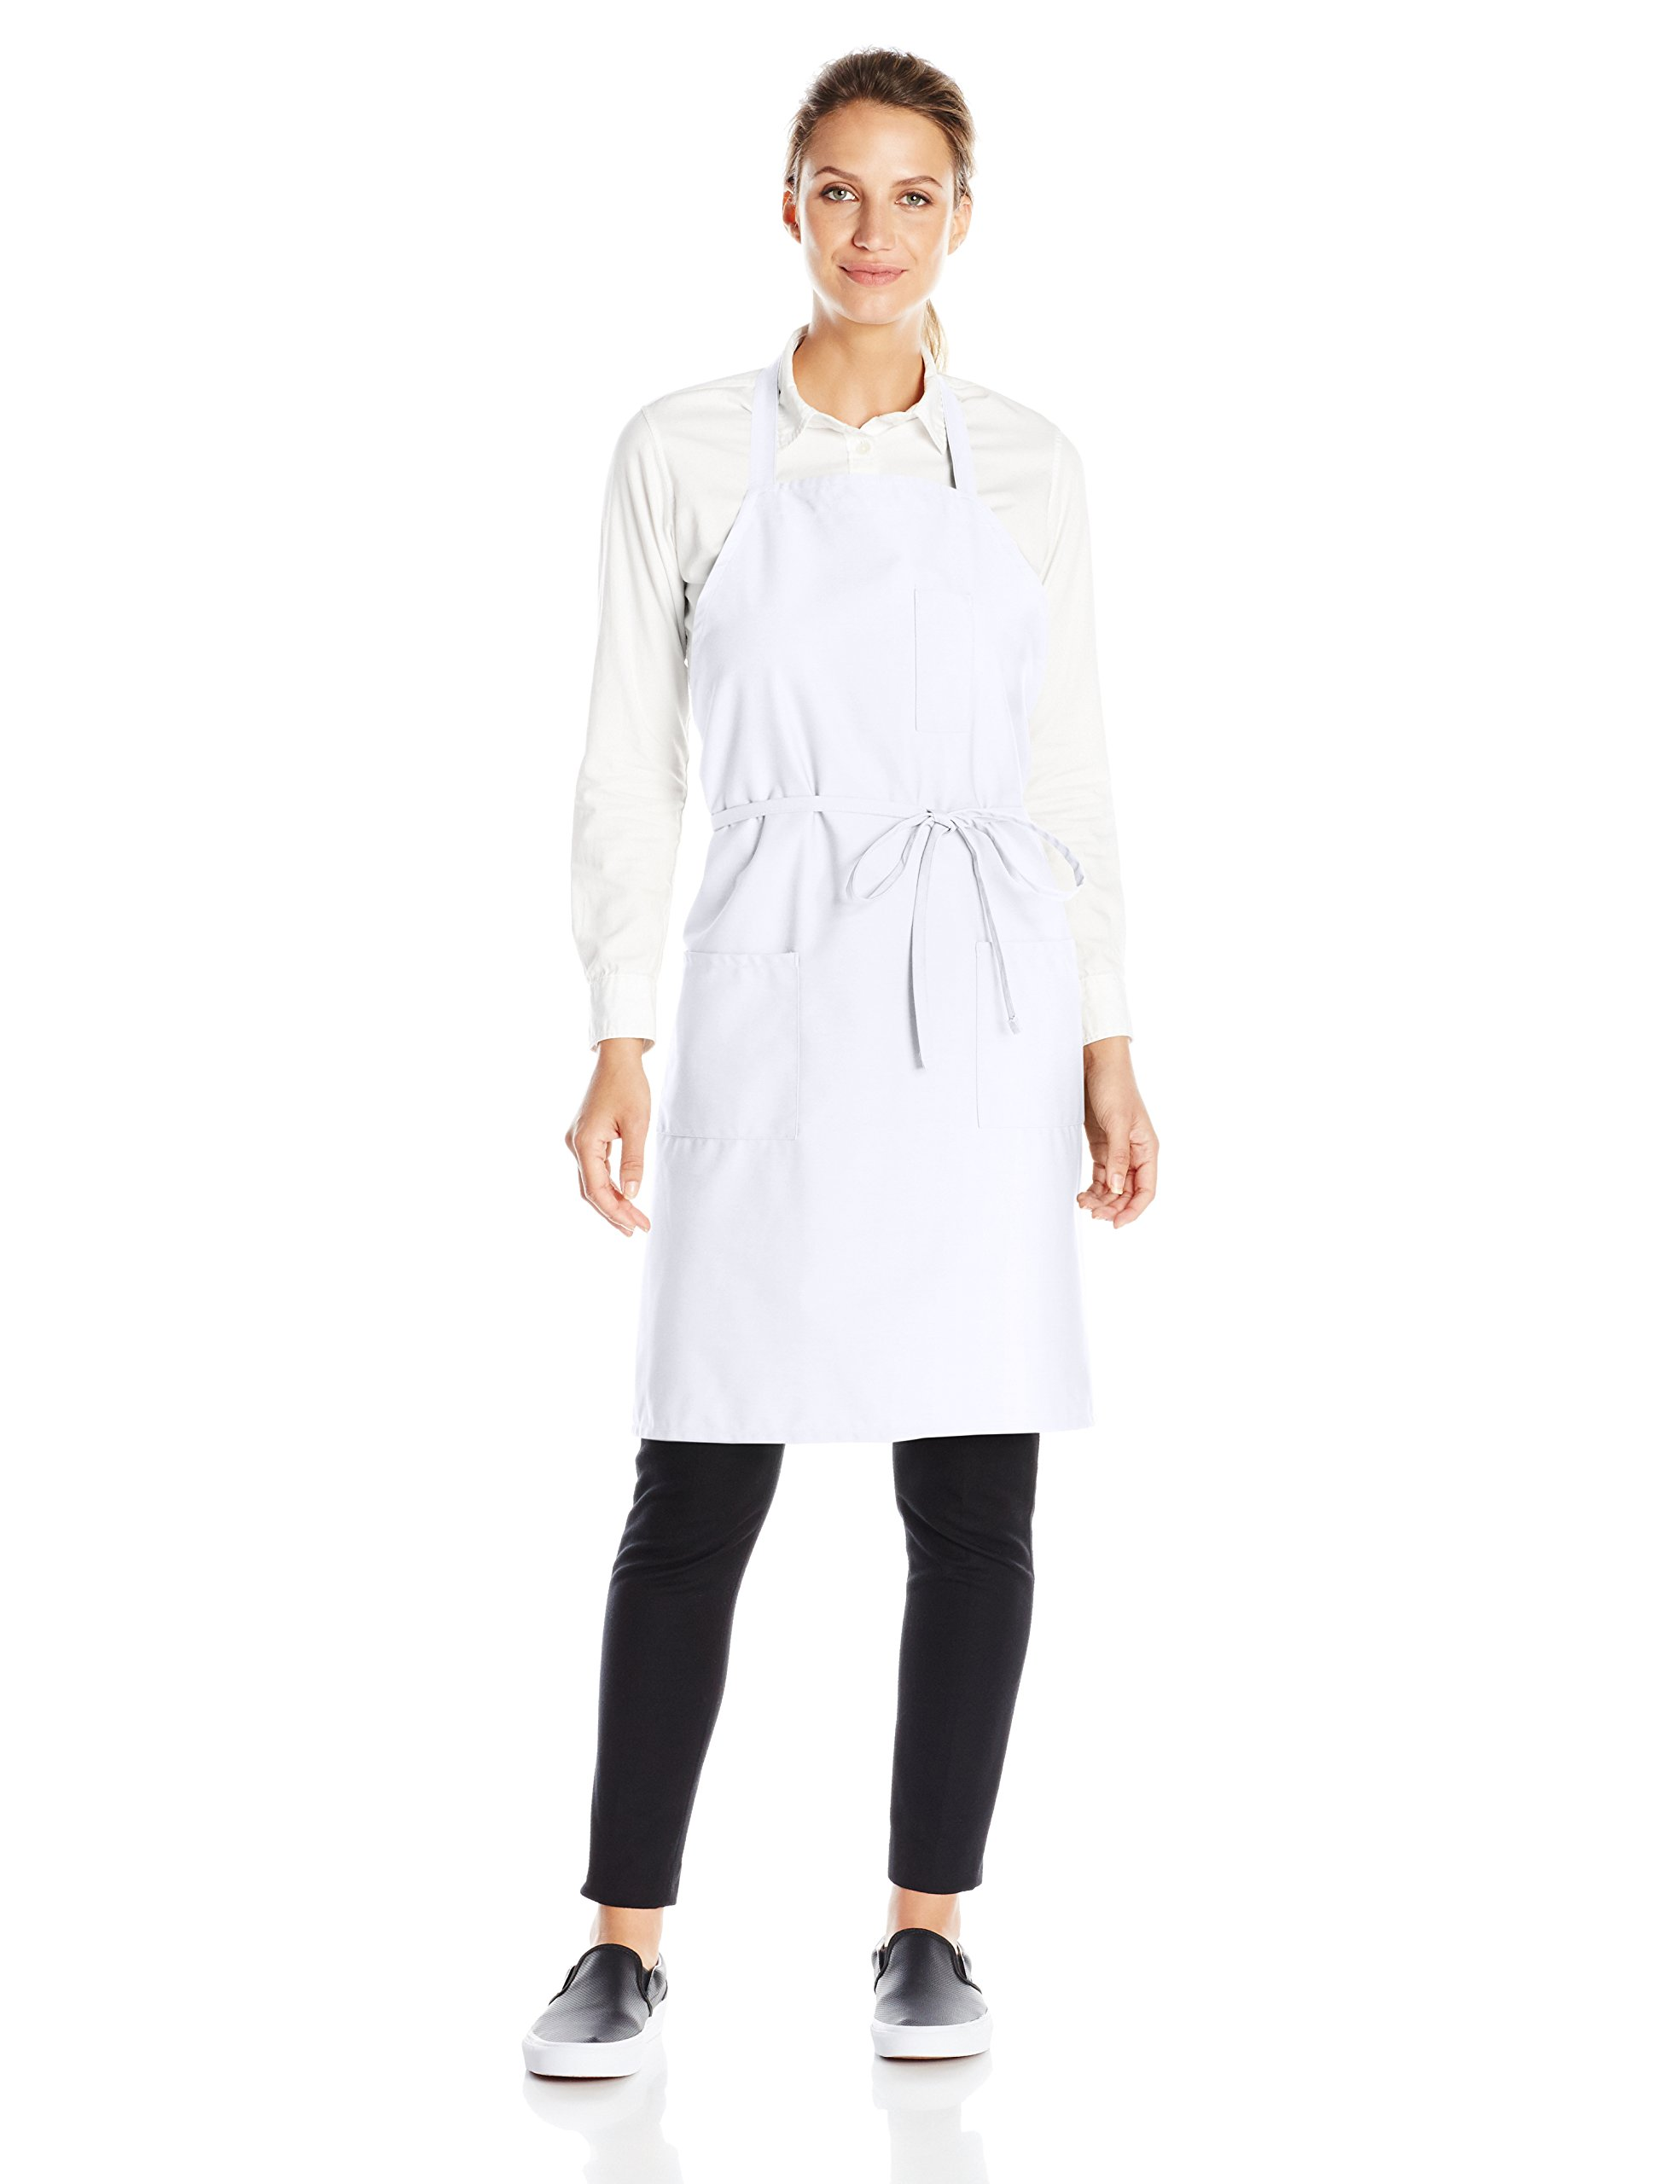 Uncommon Threads Unisex Bib Apron 3 Pockets, White, One Size